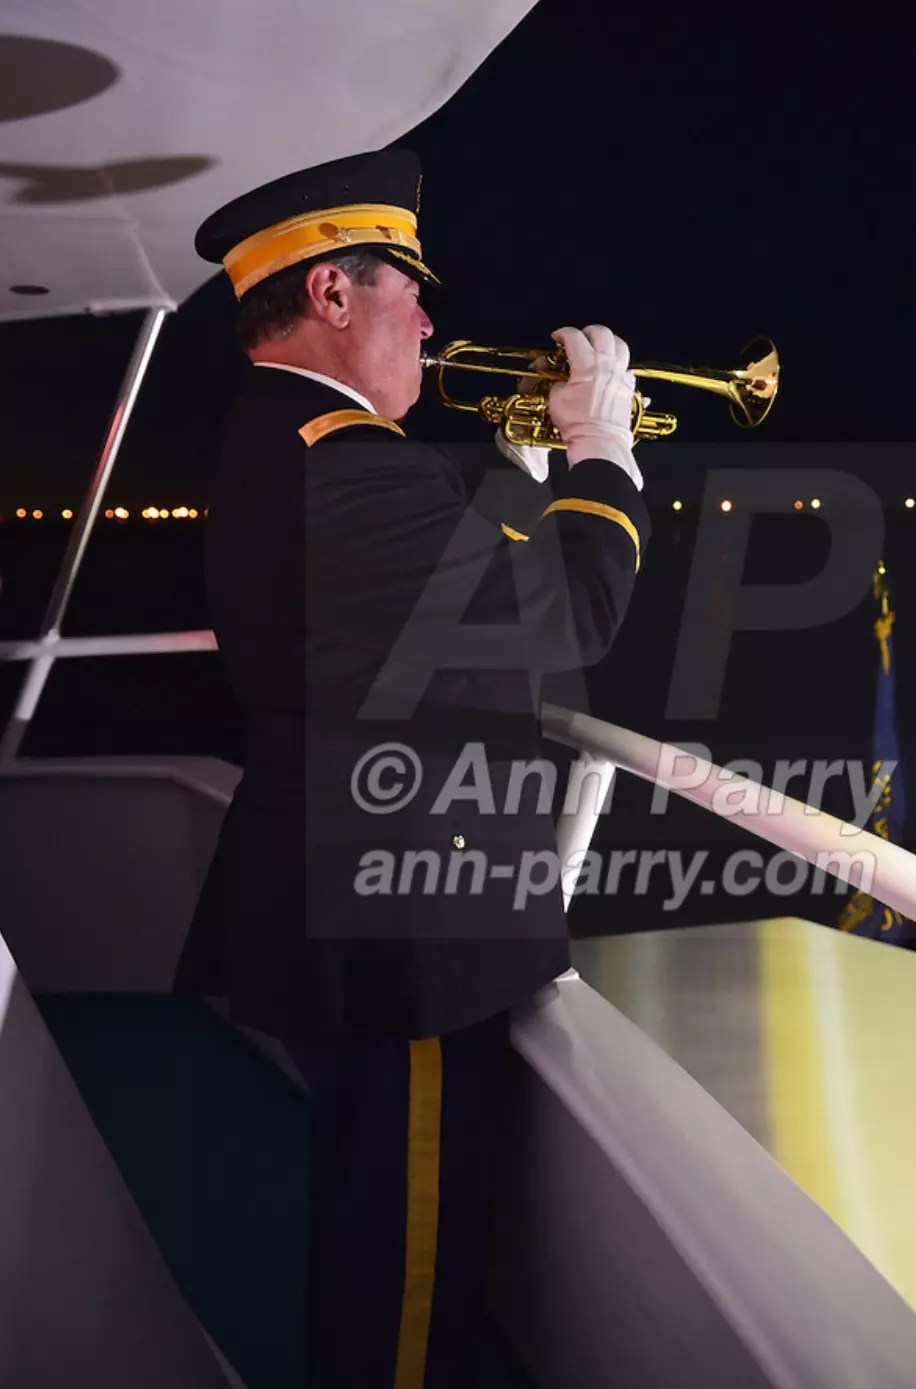 Freeport, NY, USA. 10th Sept. 2014. A bugler plays taps at night on board the boat Miss Freeport V, which sailed from the Woodcleft Canal of the Freeport Nautical Mile after a dockside remembrance ceremony in honor of victims of the terrorist attacks of September 11 2001. Ceremony was on eve of 13th anniversary of 9/11 attacks.